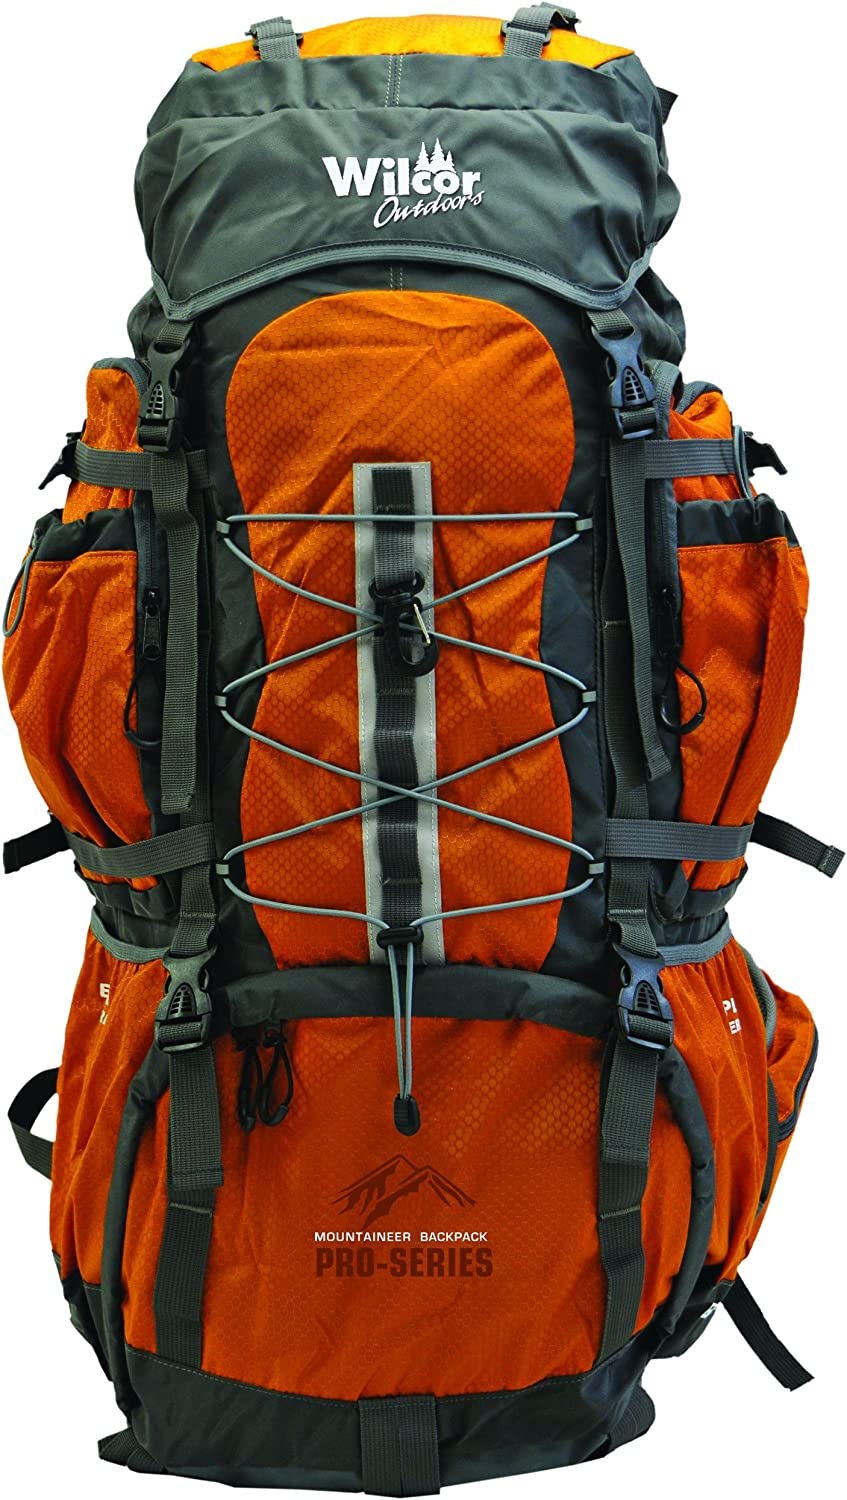 Hiking BackPack Mountaineer 60-Liter Pro Pack 11 Pockets, Cover, Loops Water Bladder Ready